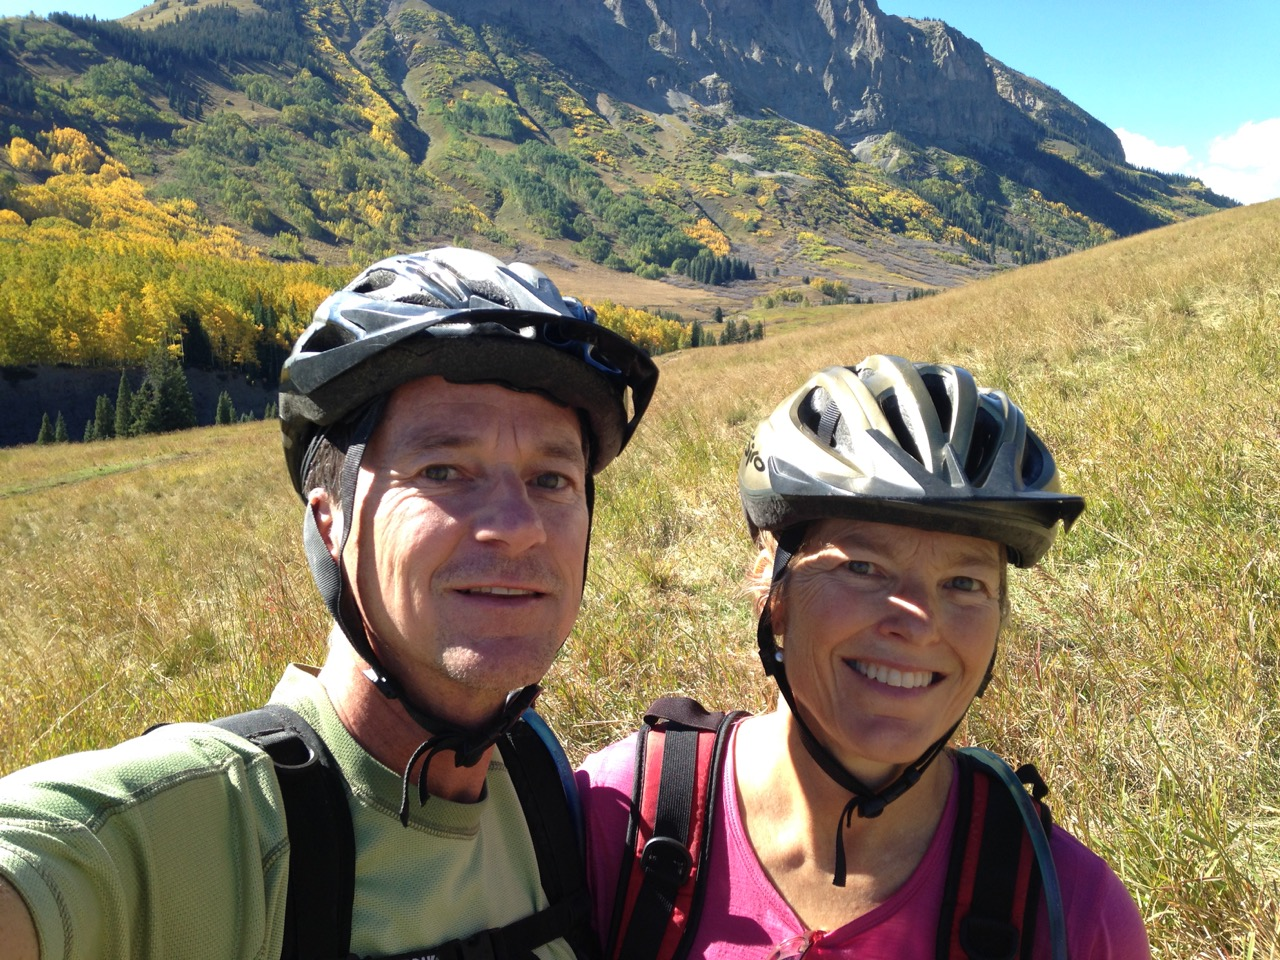 Dave and Lisa Mt. Biking in Crested Butte Colorado